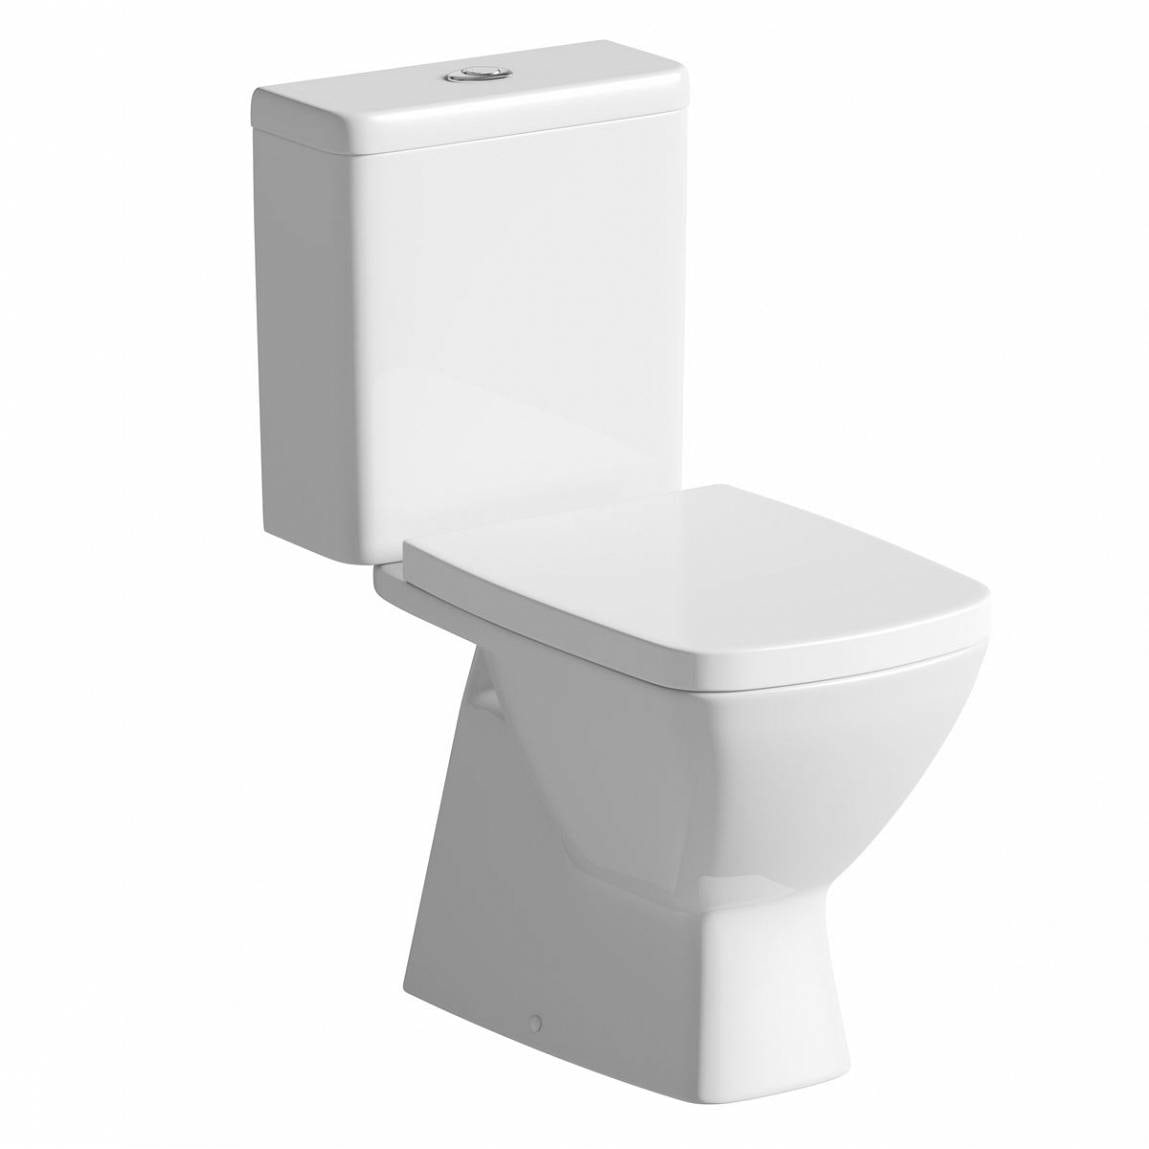 Mode Cooper close coupled toilet with soft close seat